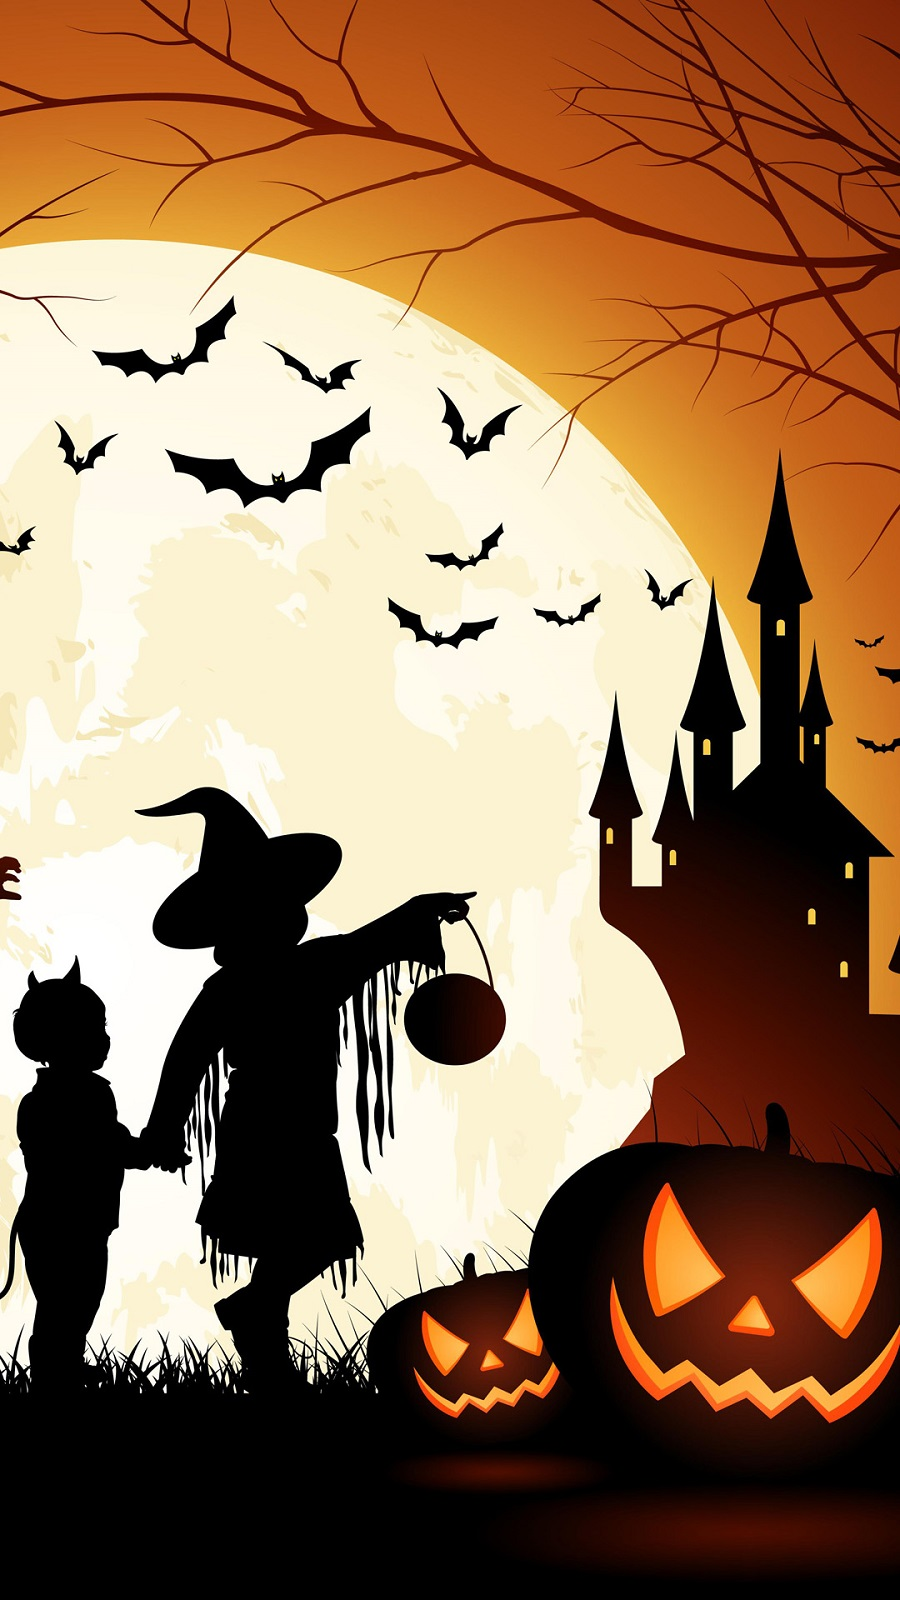 Scary Halloween Images For iPhone